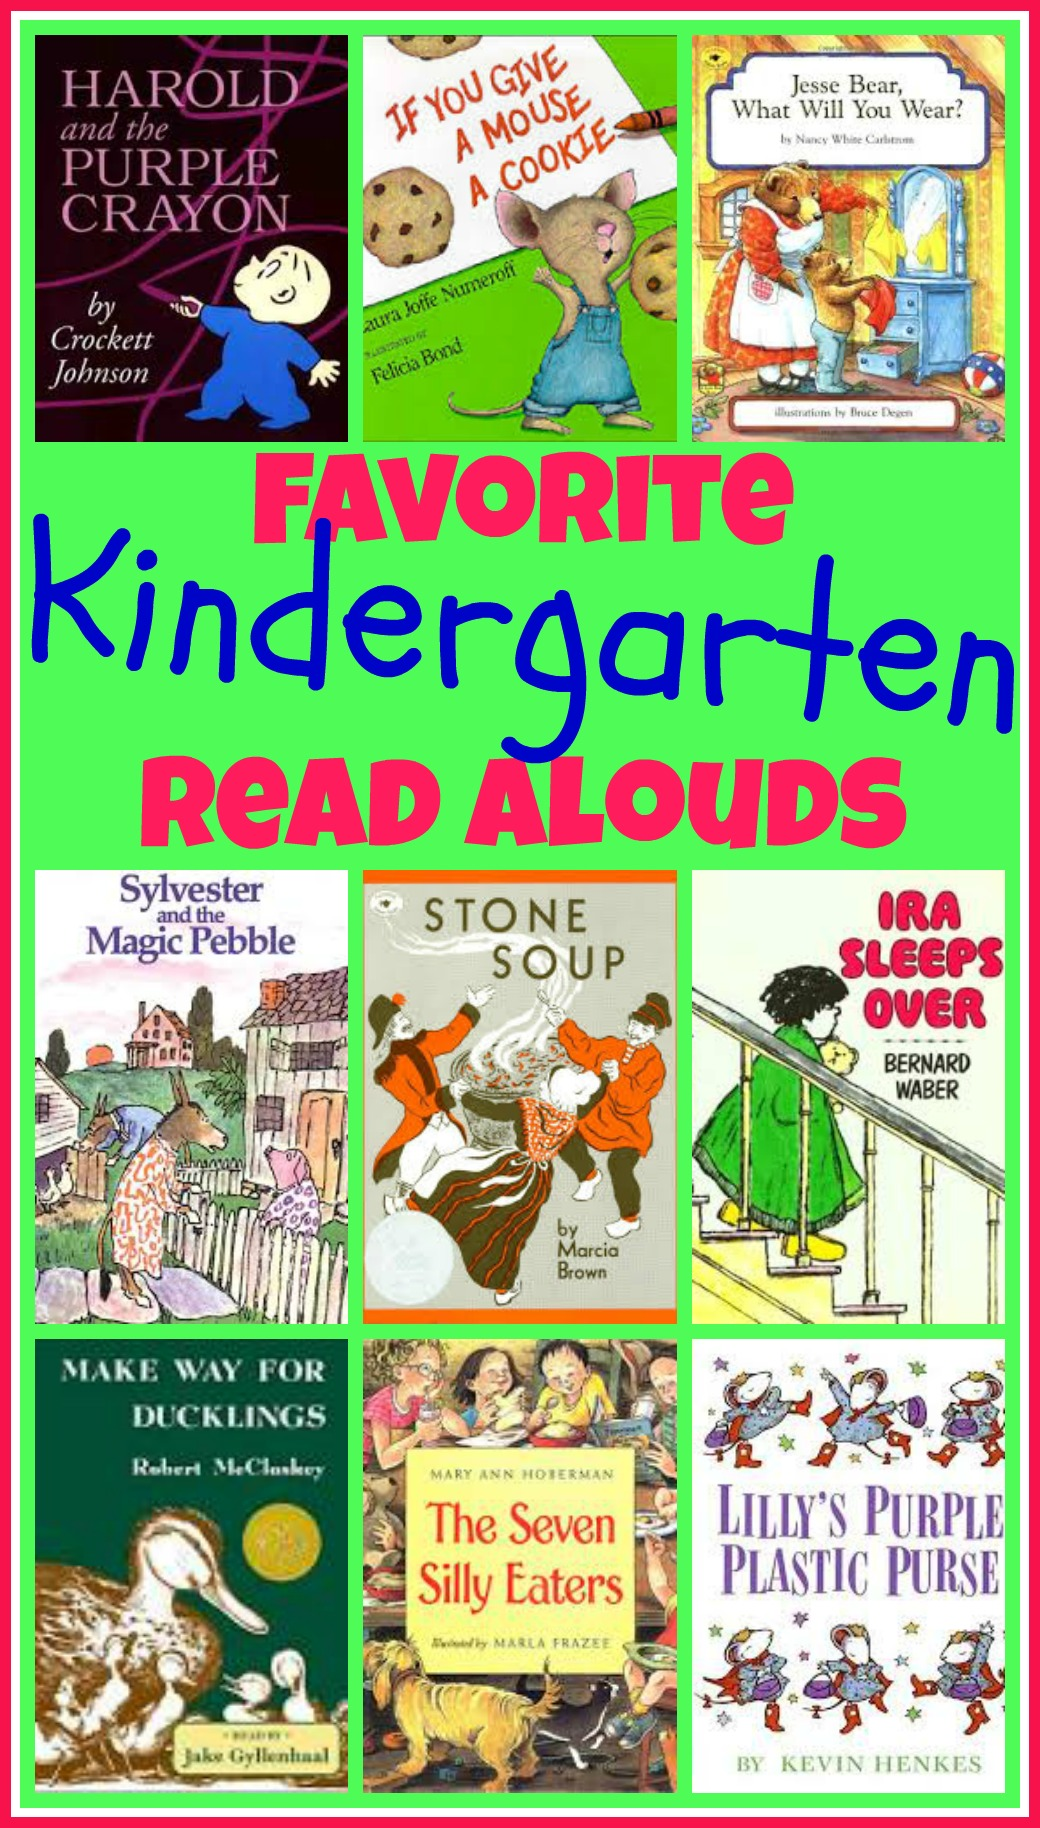 Books for kids! Looking for some great read aloud ideas for your 4 and 5 year old little ones? Here's a great list of picture books, short stories, and poetry - perfect for little ones!